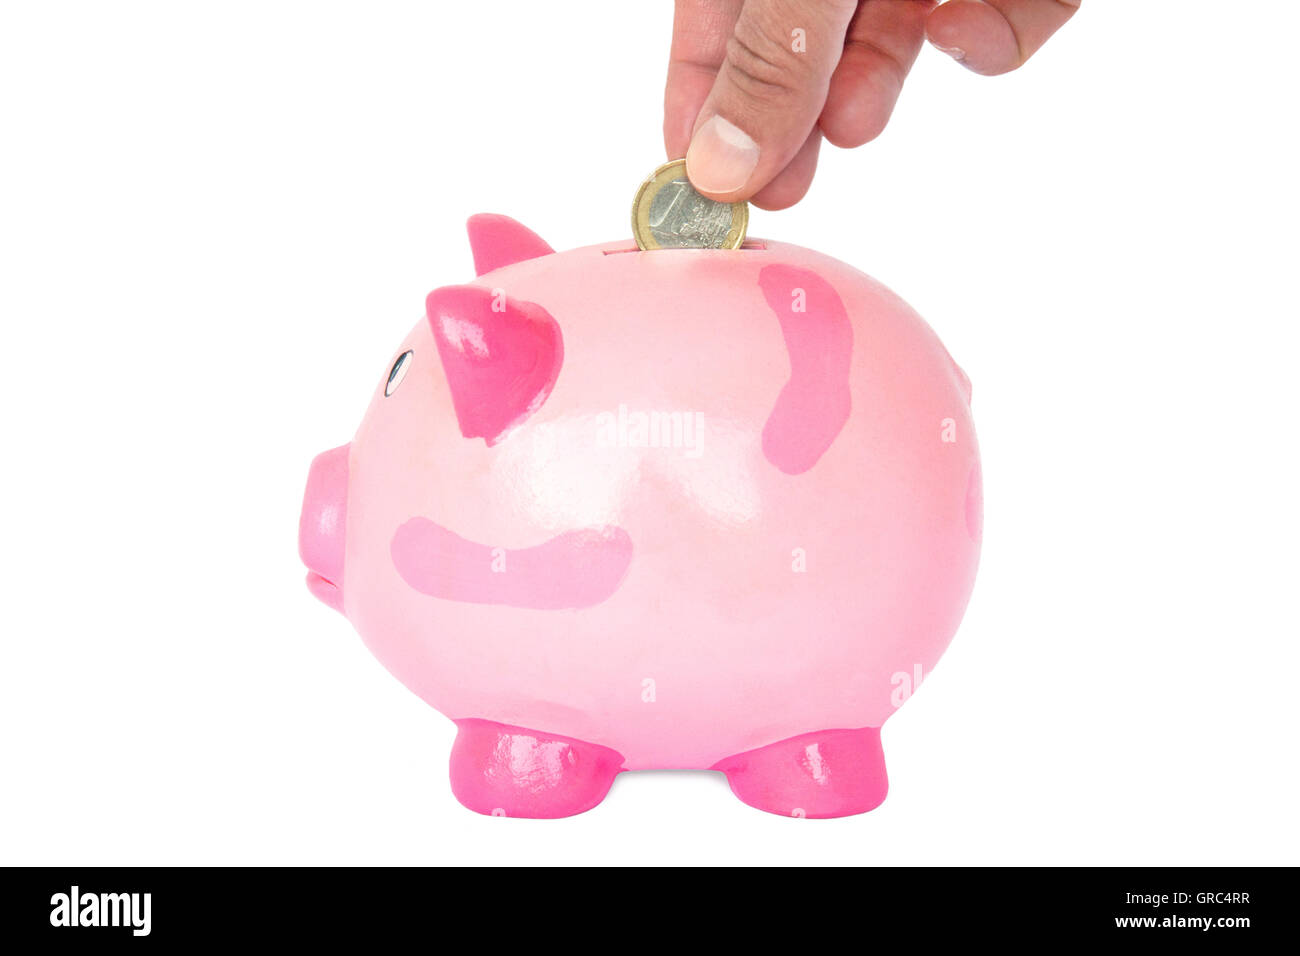 Female Hand Throwing On Euro Into A Pink Piggy Bank - Stock Image